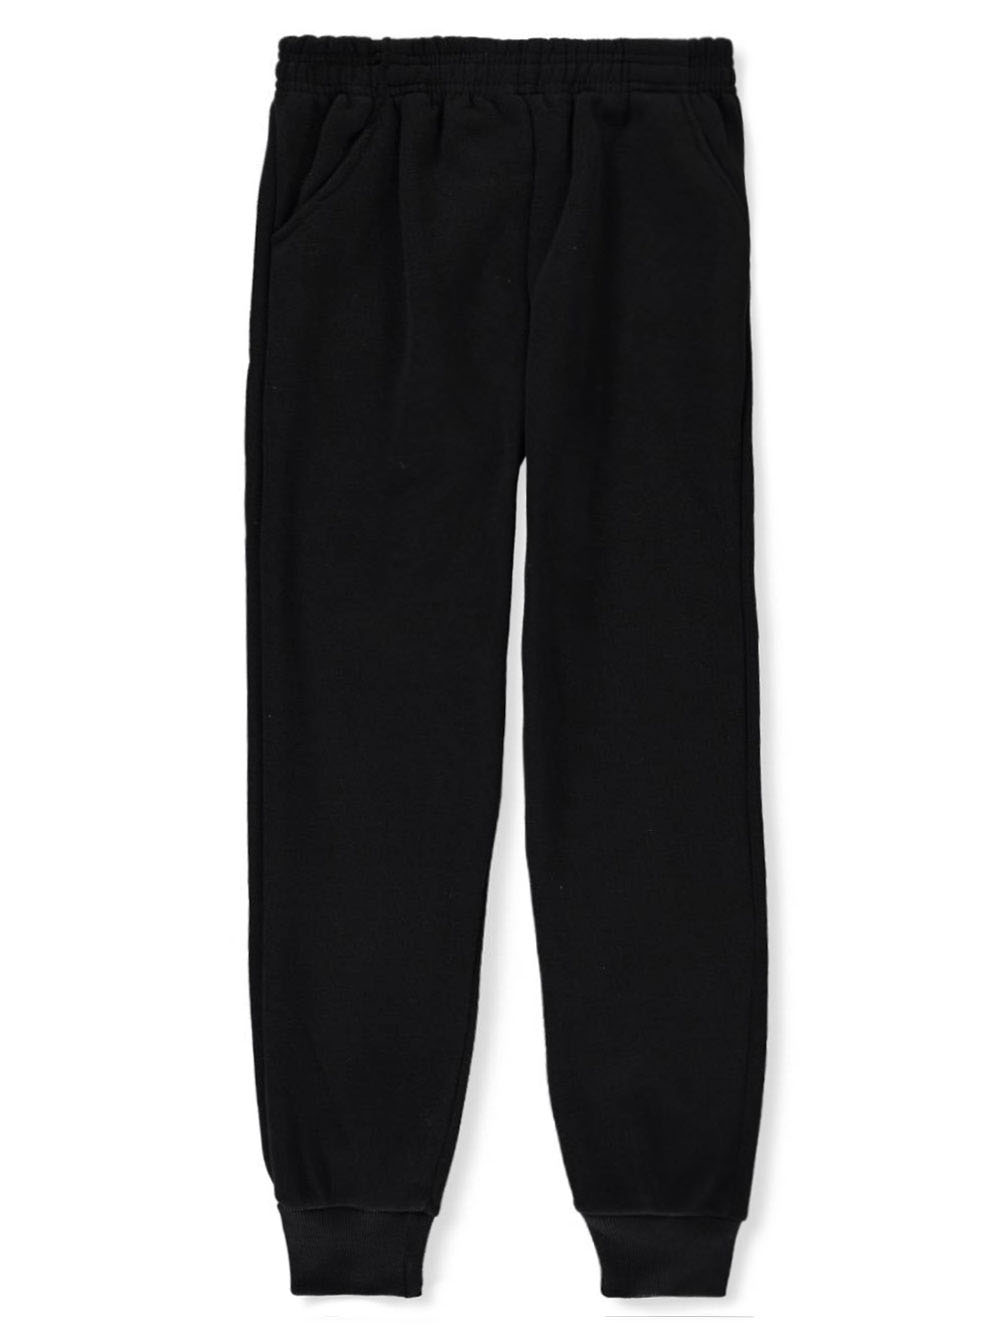 Size 12-14 Sweatpants for Boys